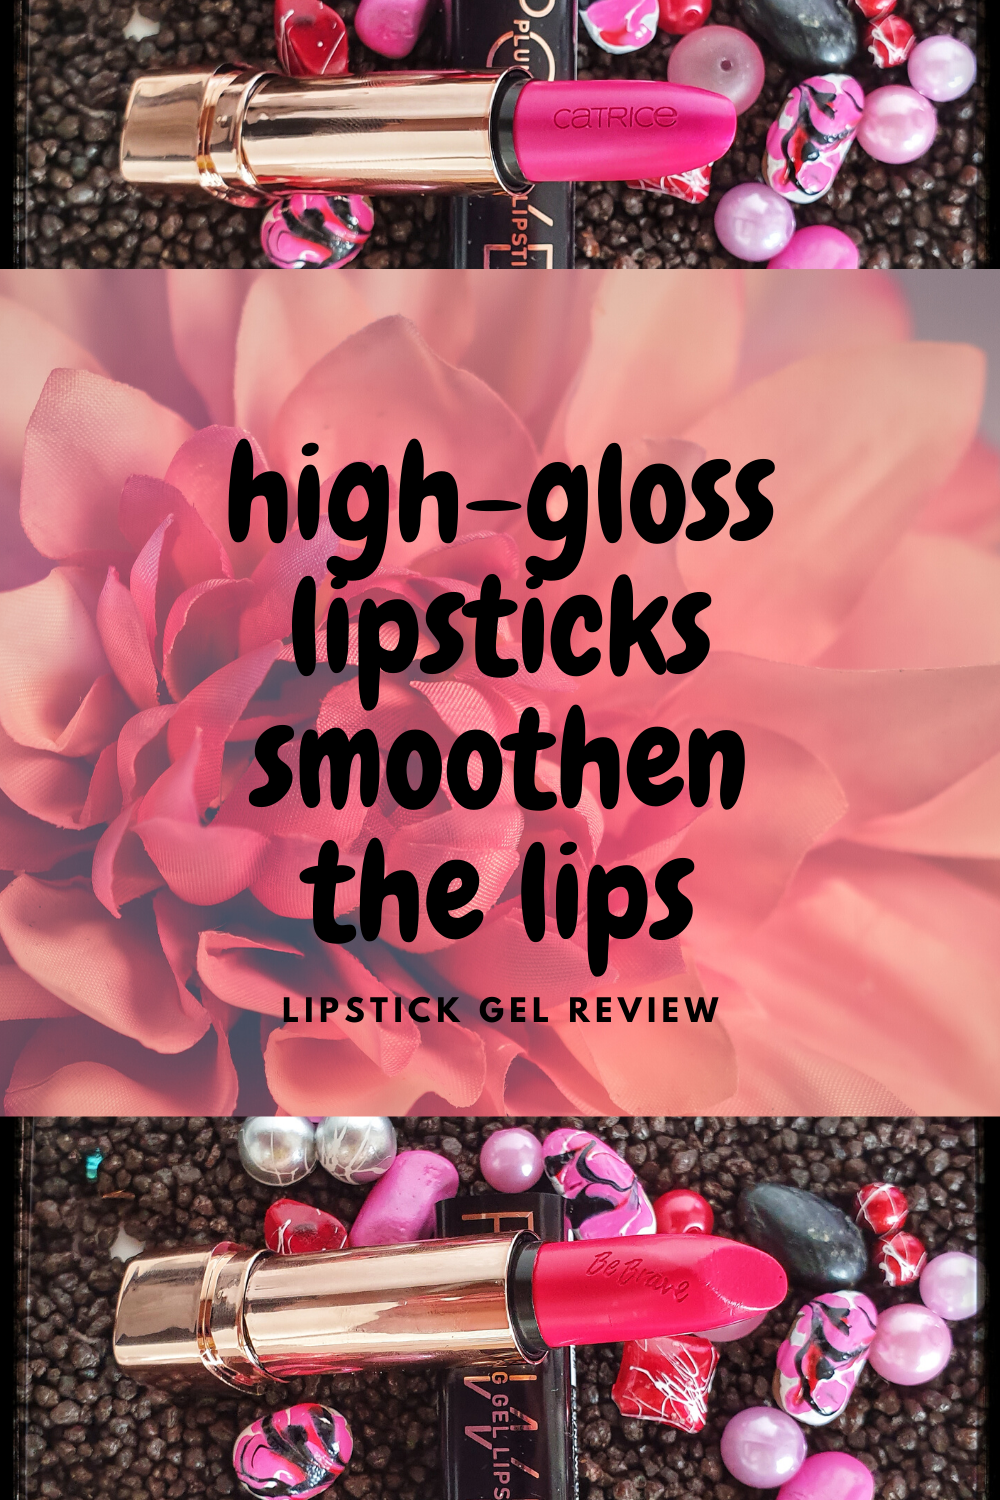 Photo of Catrice Plumping Lipstick Gel Review